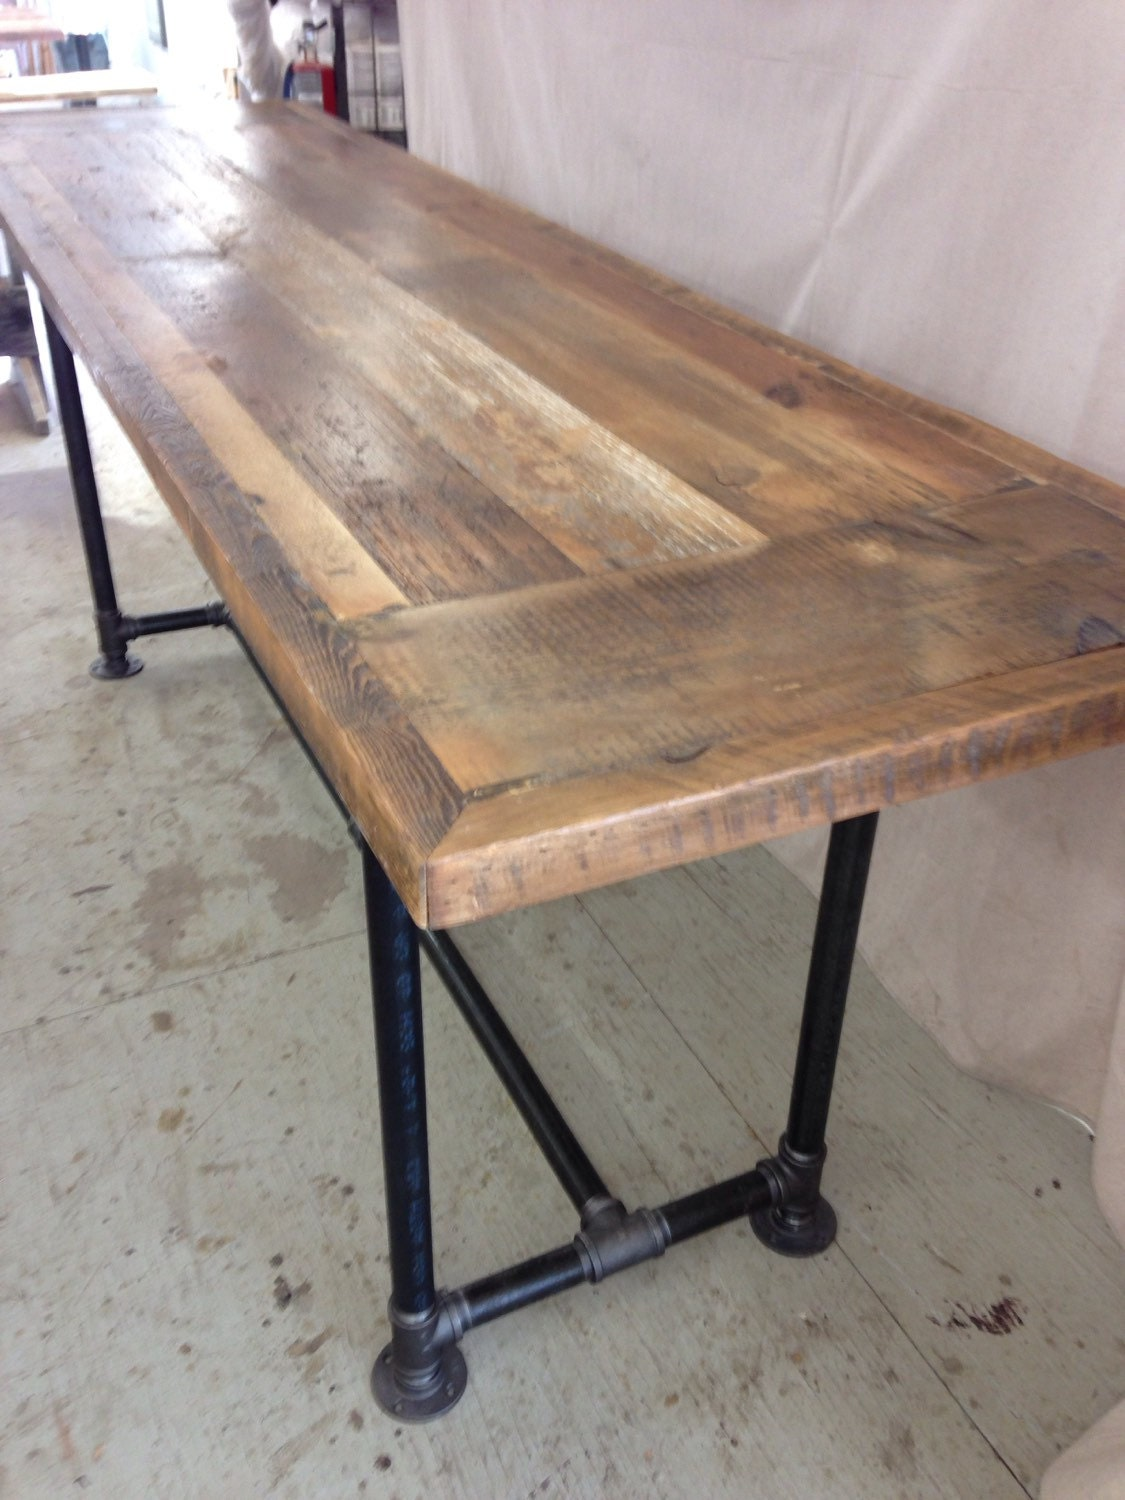 Reclaimed wood dining table modern industrial 8 ft x 3 ft : ilfullxfull858022433735c from www.etsy.com size 1125 x 1500 jpeg 240kB